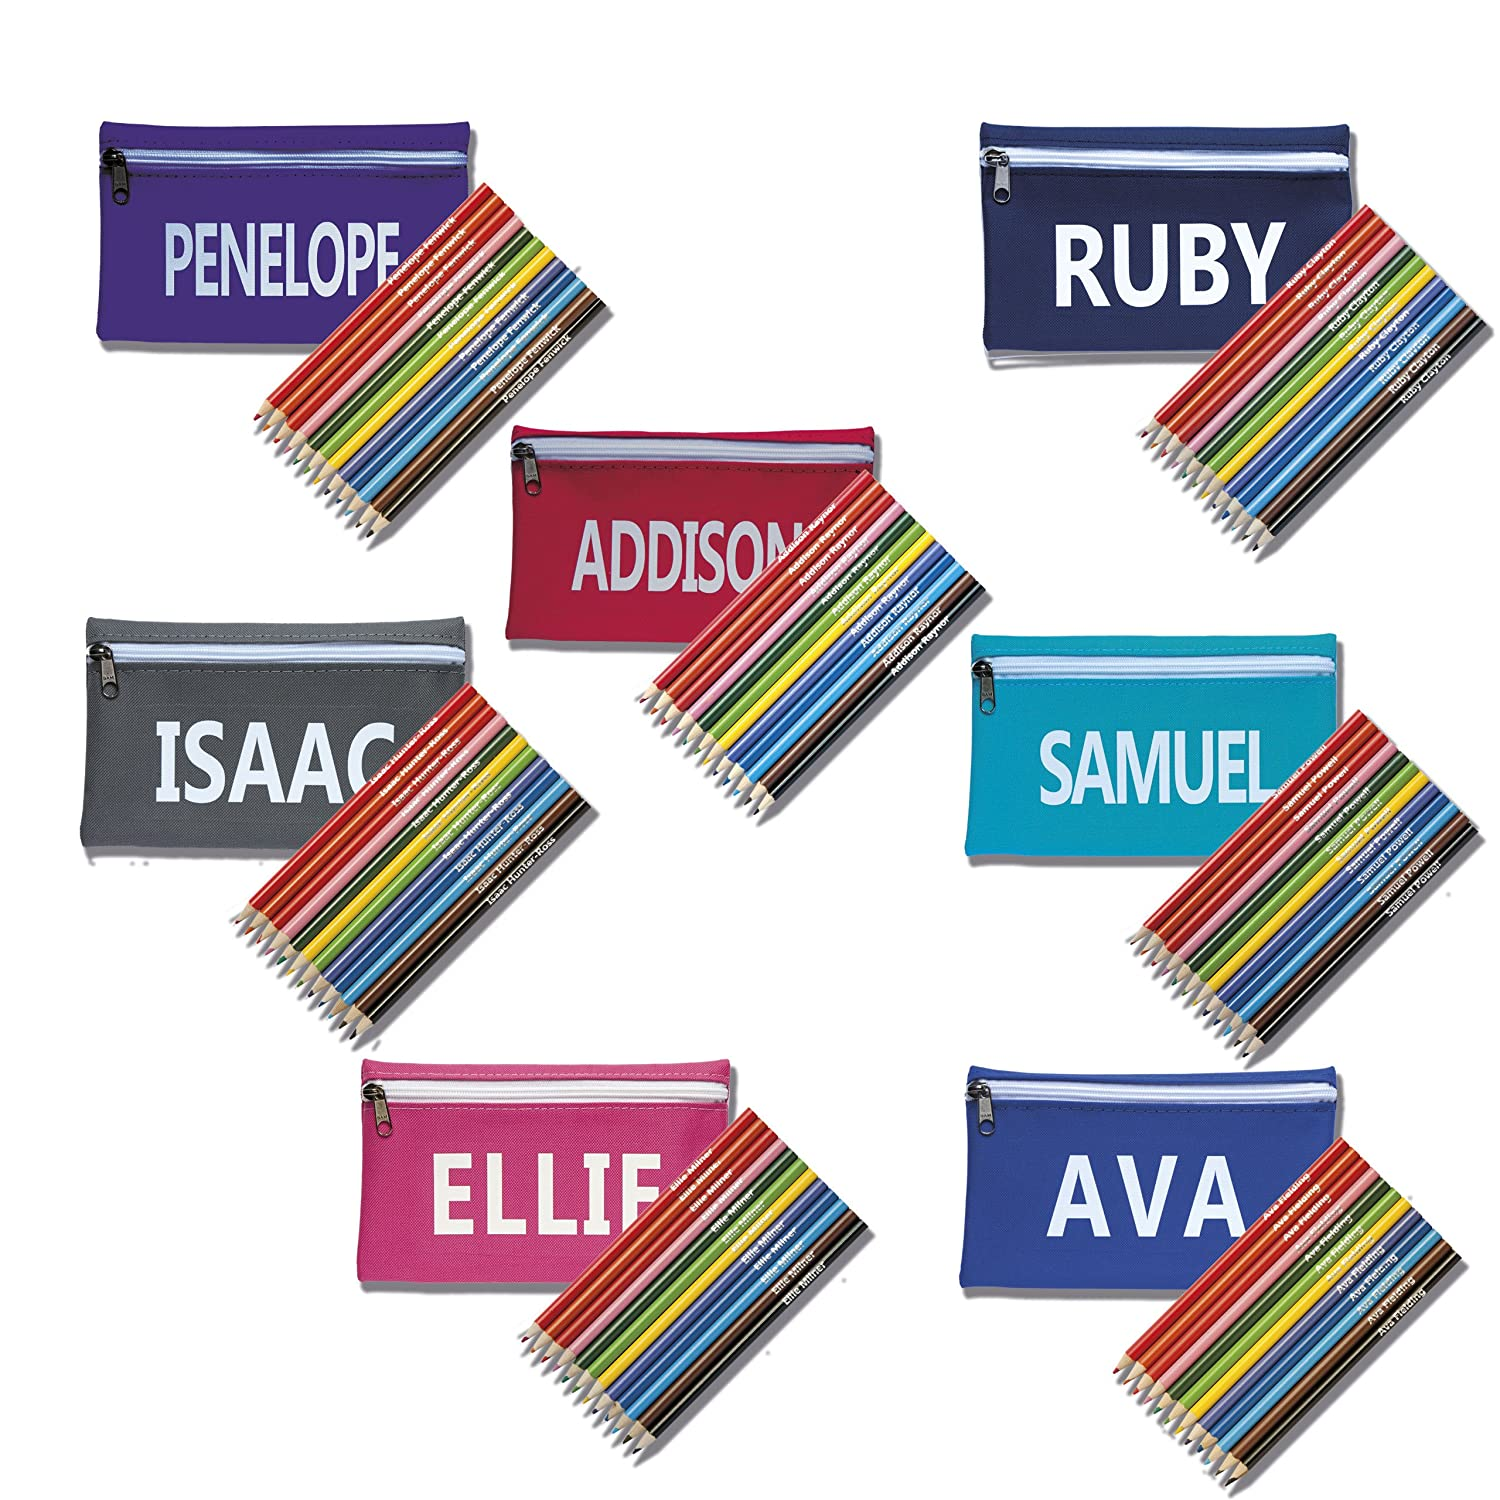 Zip Pencil Case with Pencils personalised with name (Royal Blue) That' s My Pencil